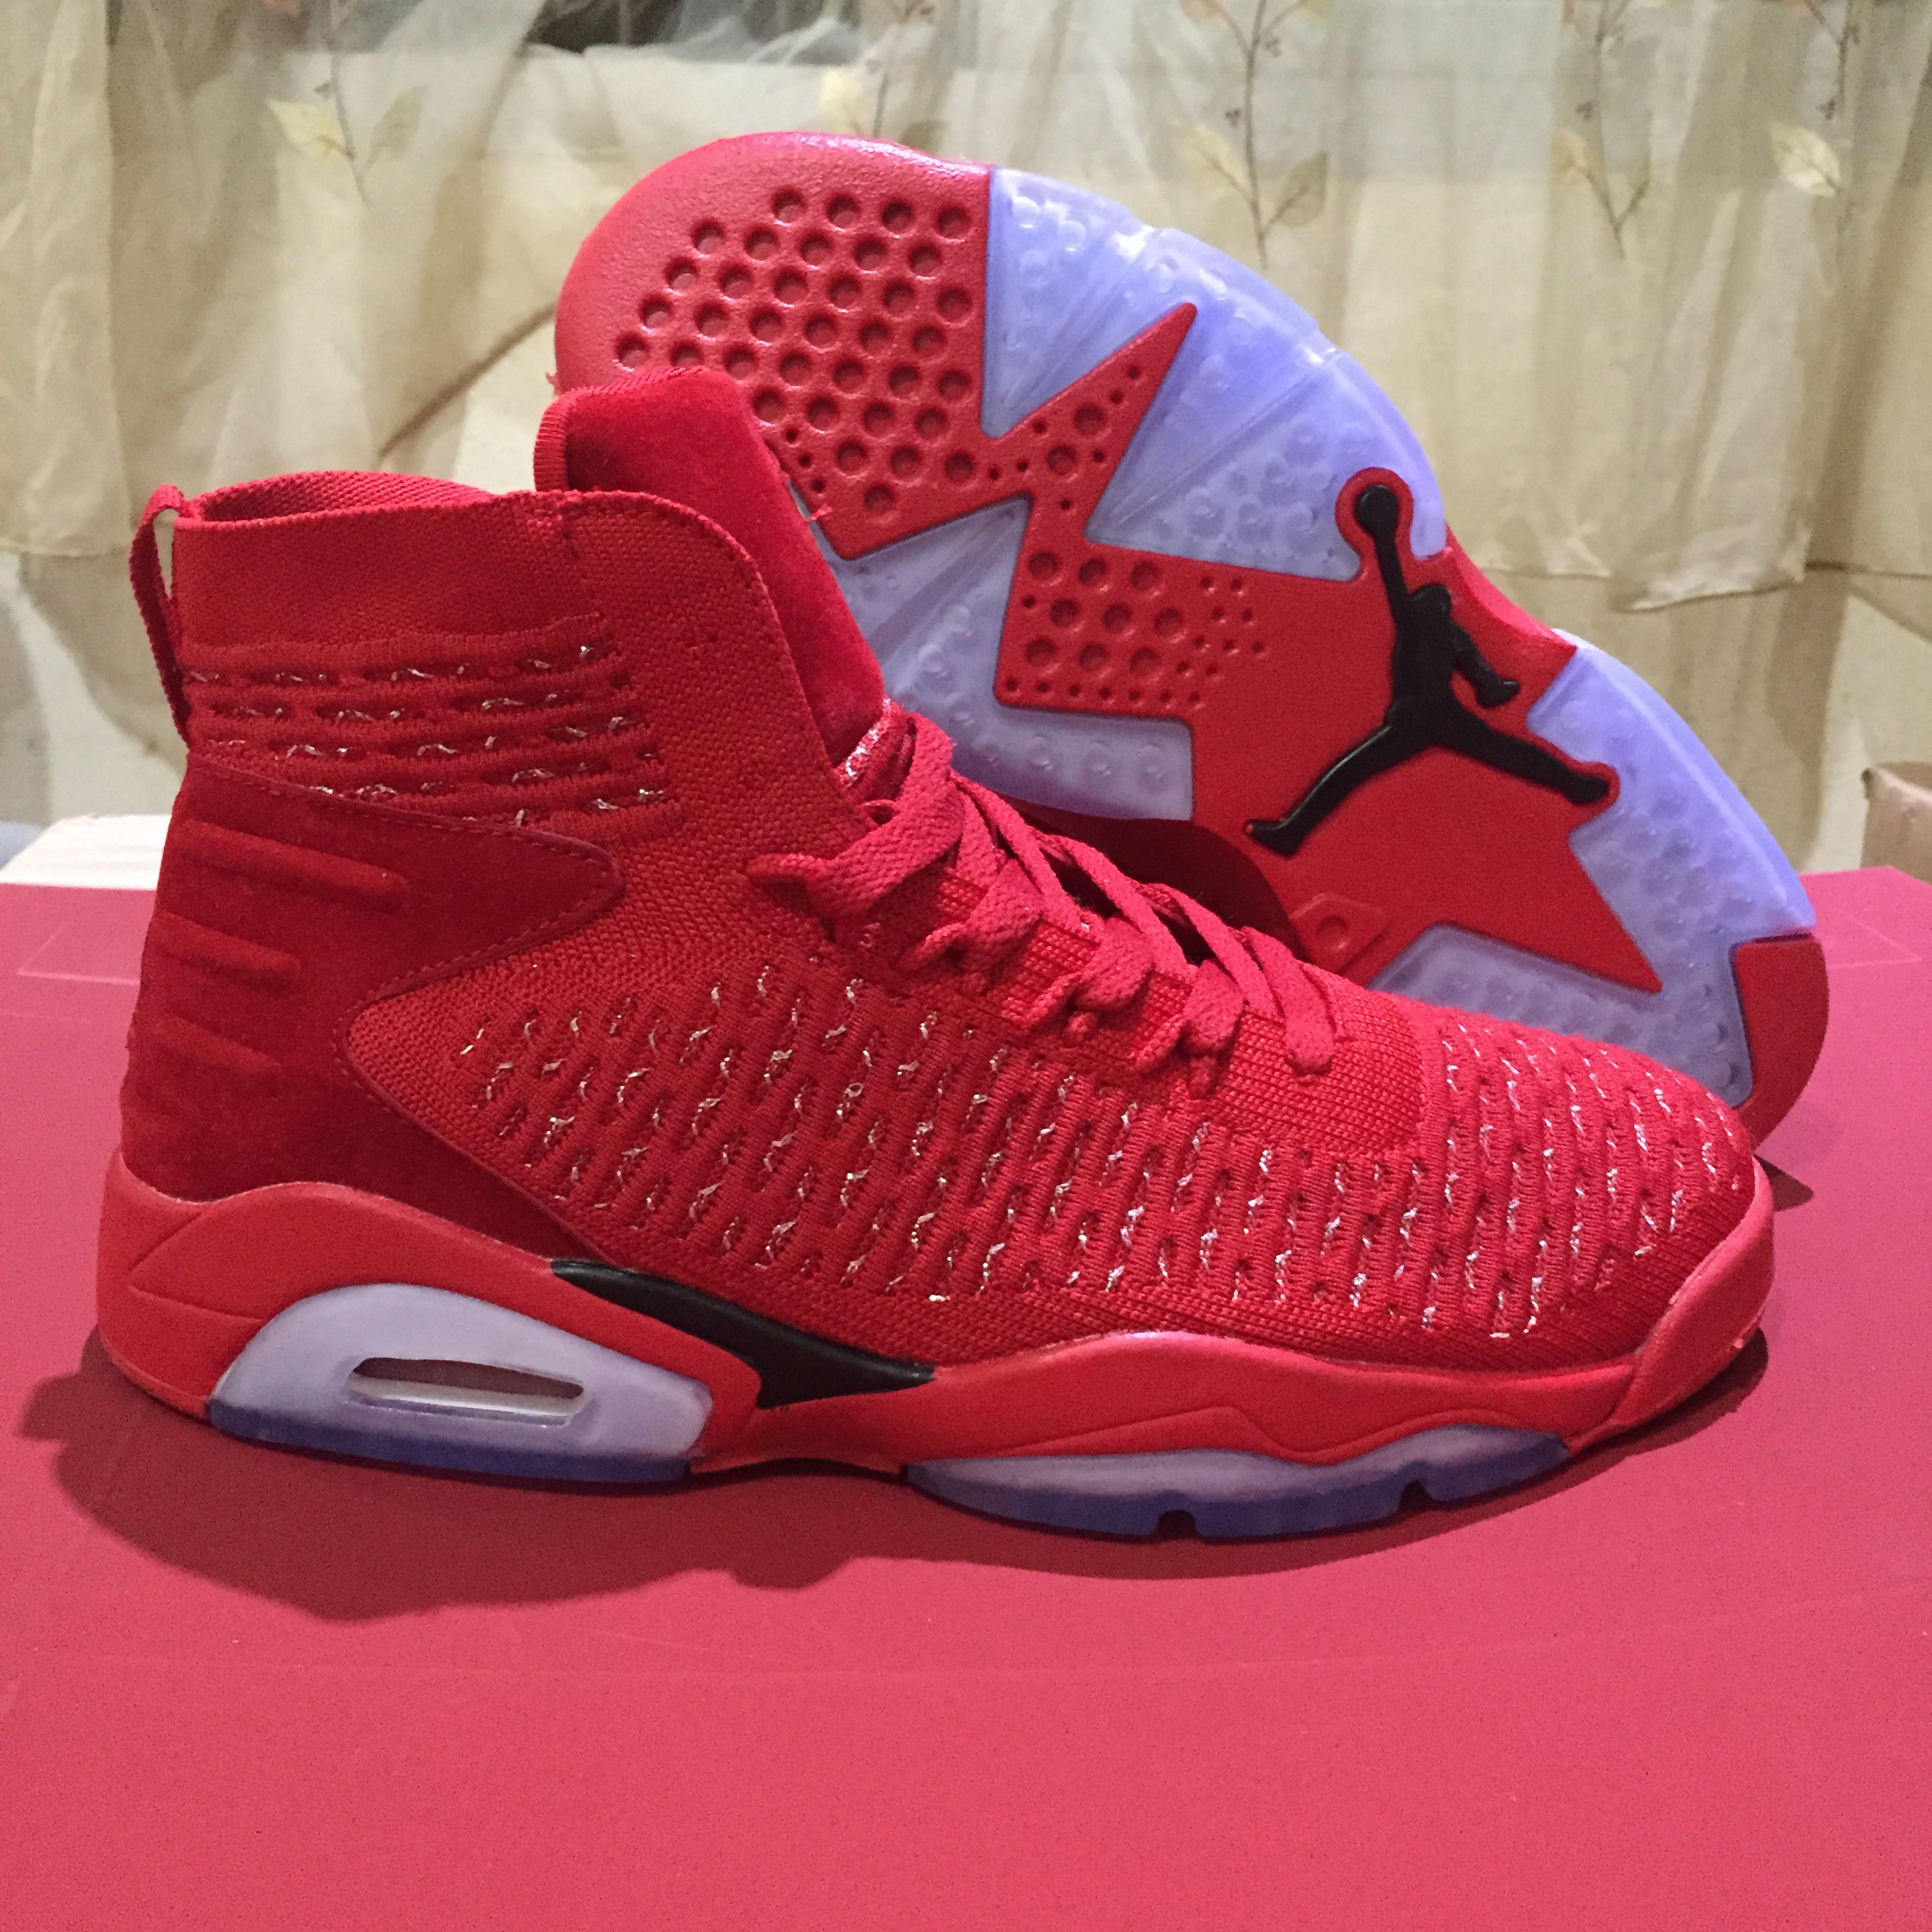 separation shoes b51aa 8d478 Air Jordan 6 Retro Flyknit Elevation 23 Red 2018 Mens Air Jordans Retro 6s  Basketball Shoes XY244 - Getfashionsstore.